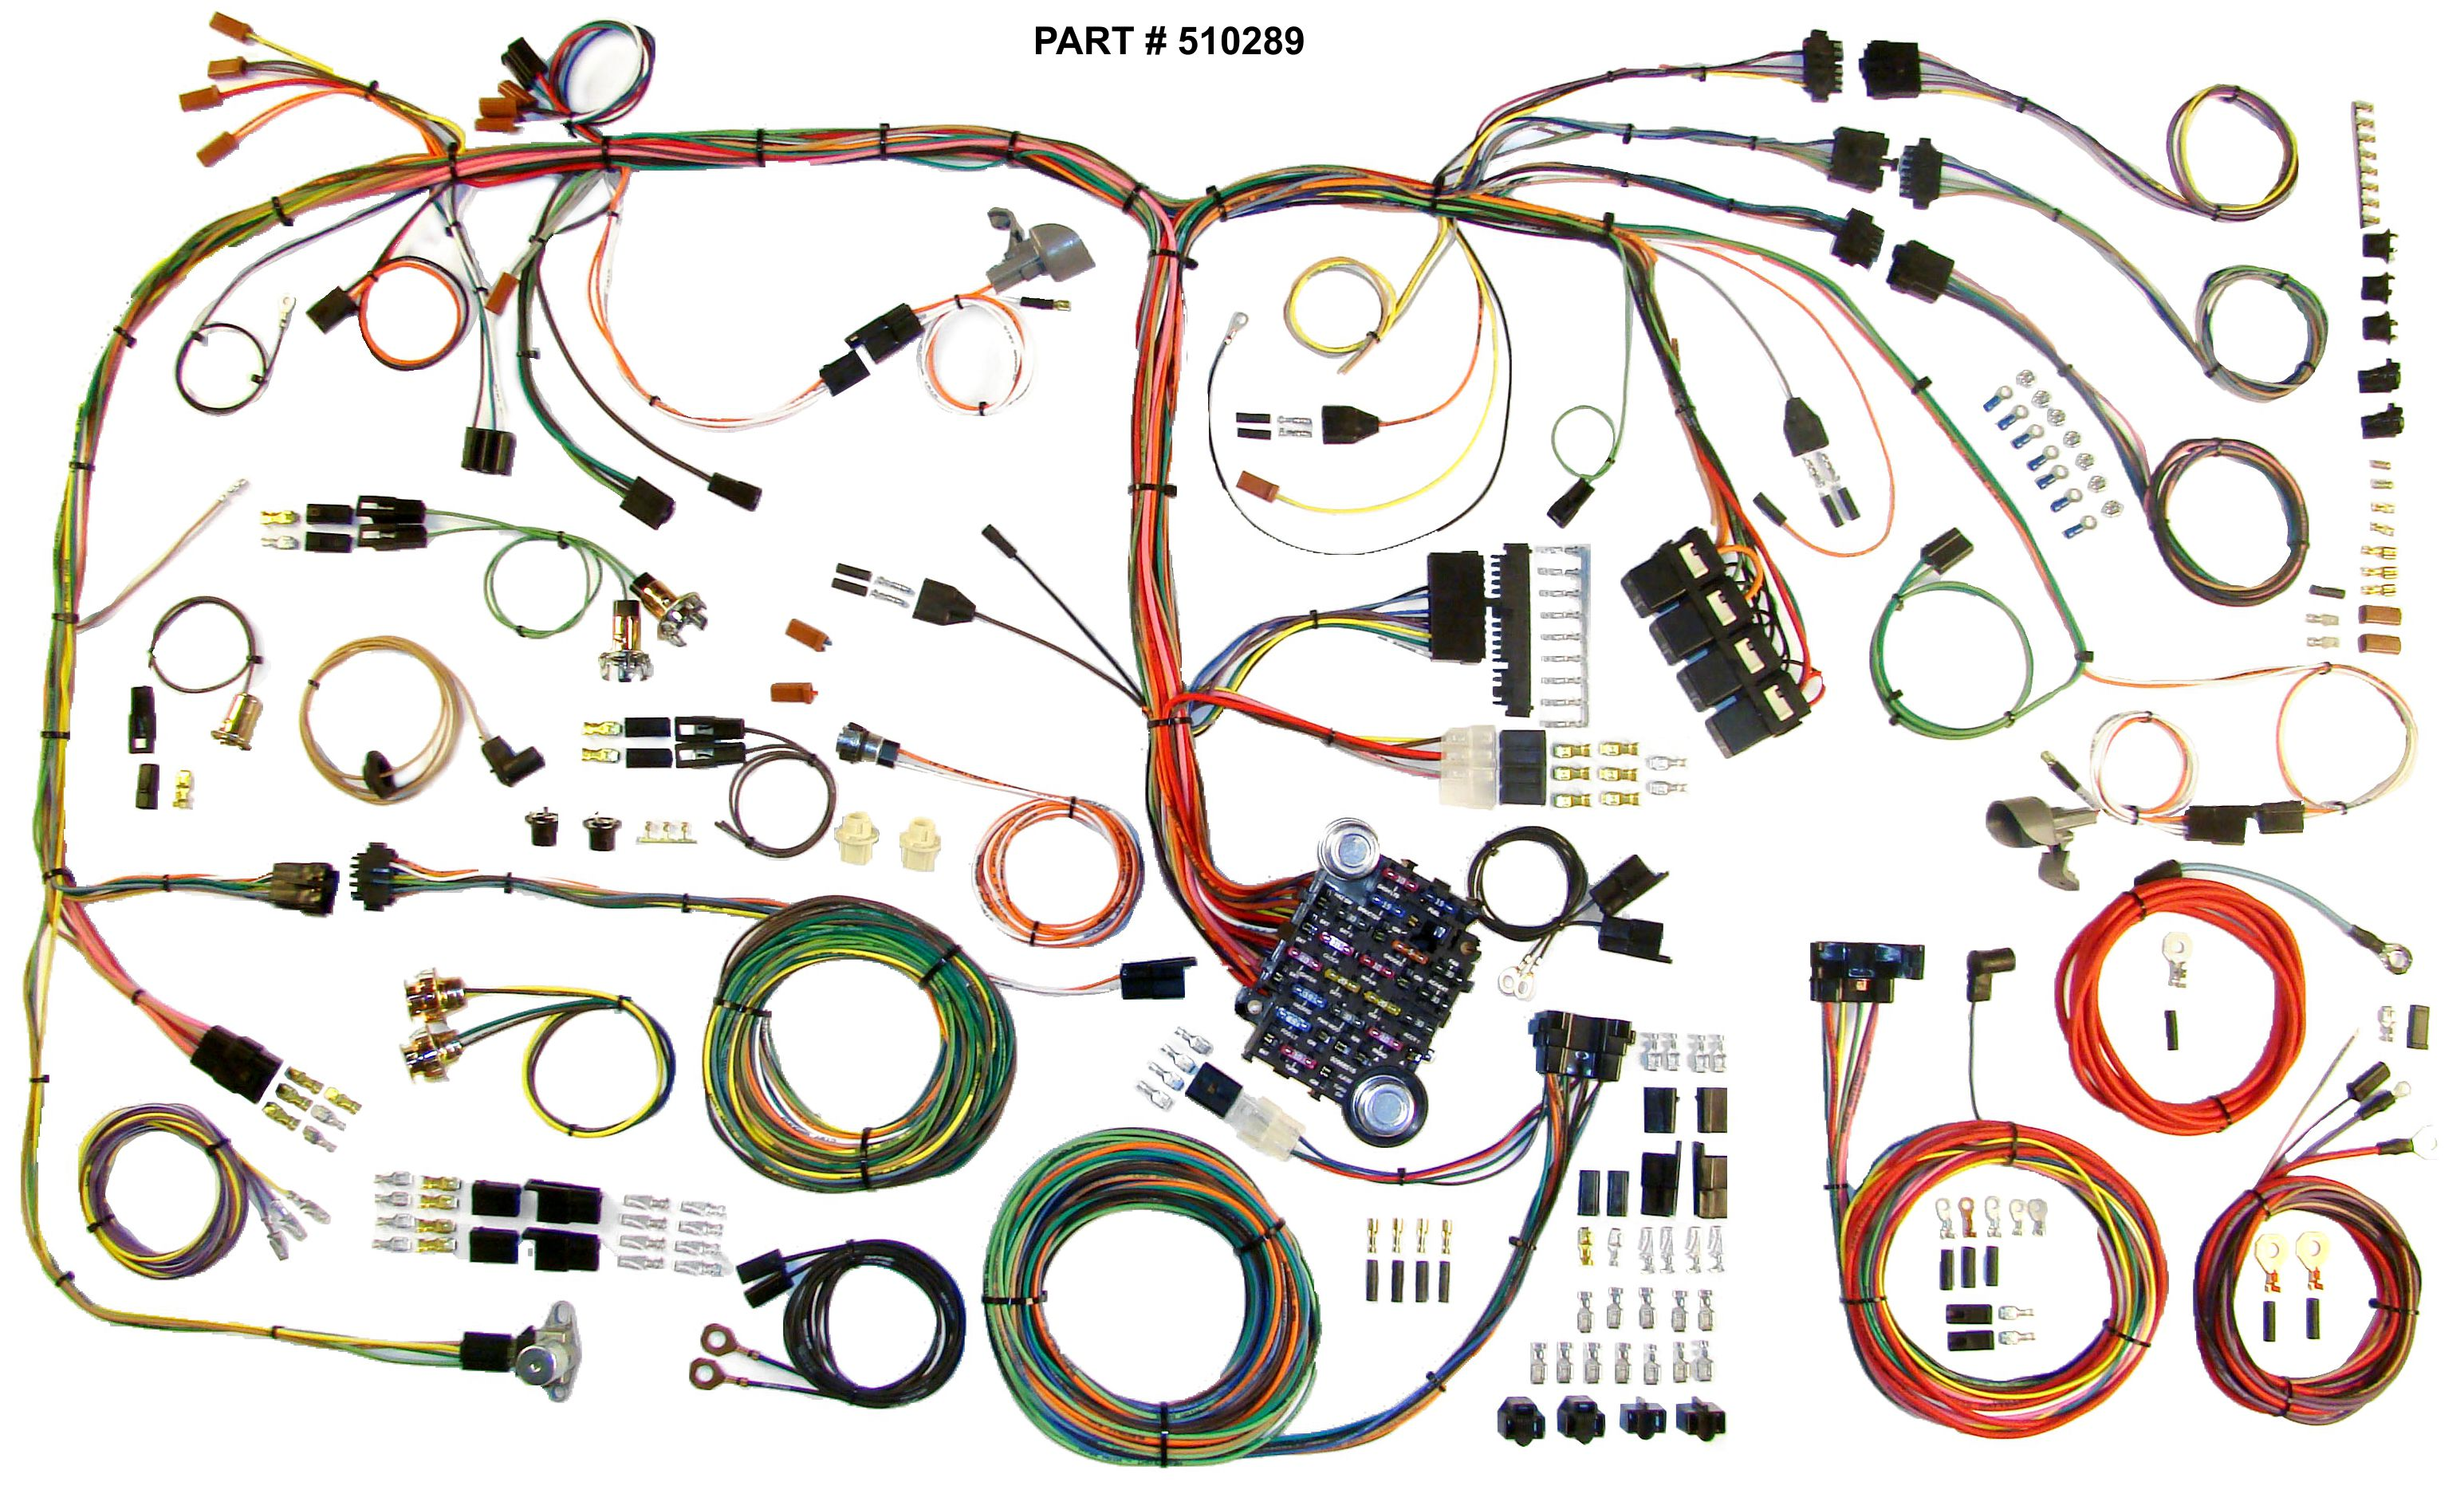 1969 Dodge Charger Wiring Diagram On 74 Charger Dash Light Wiring